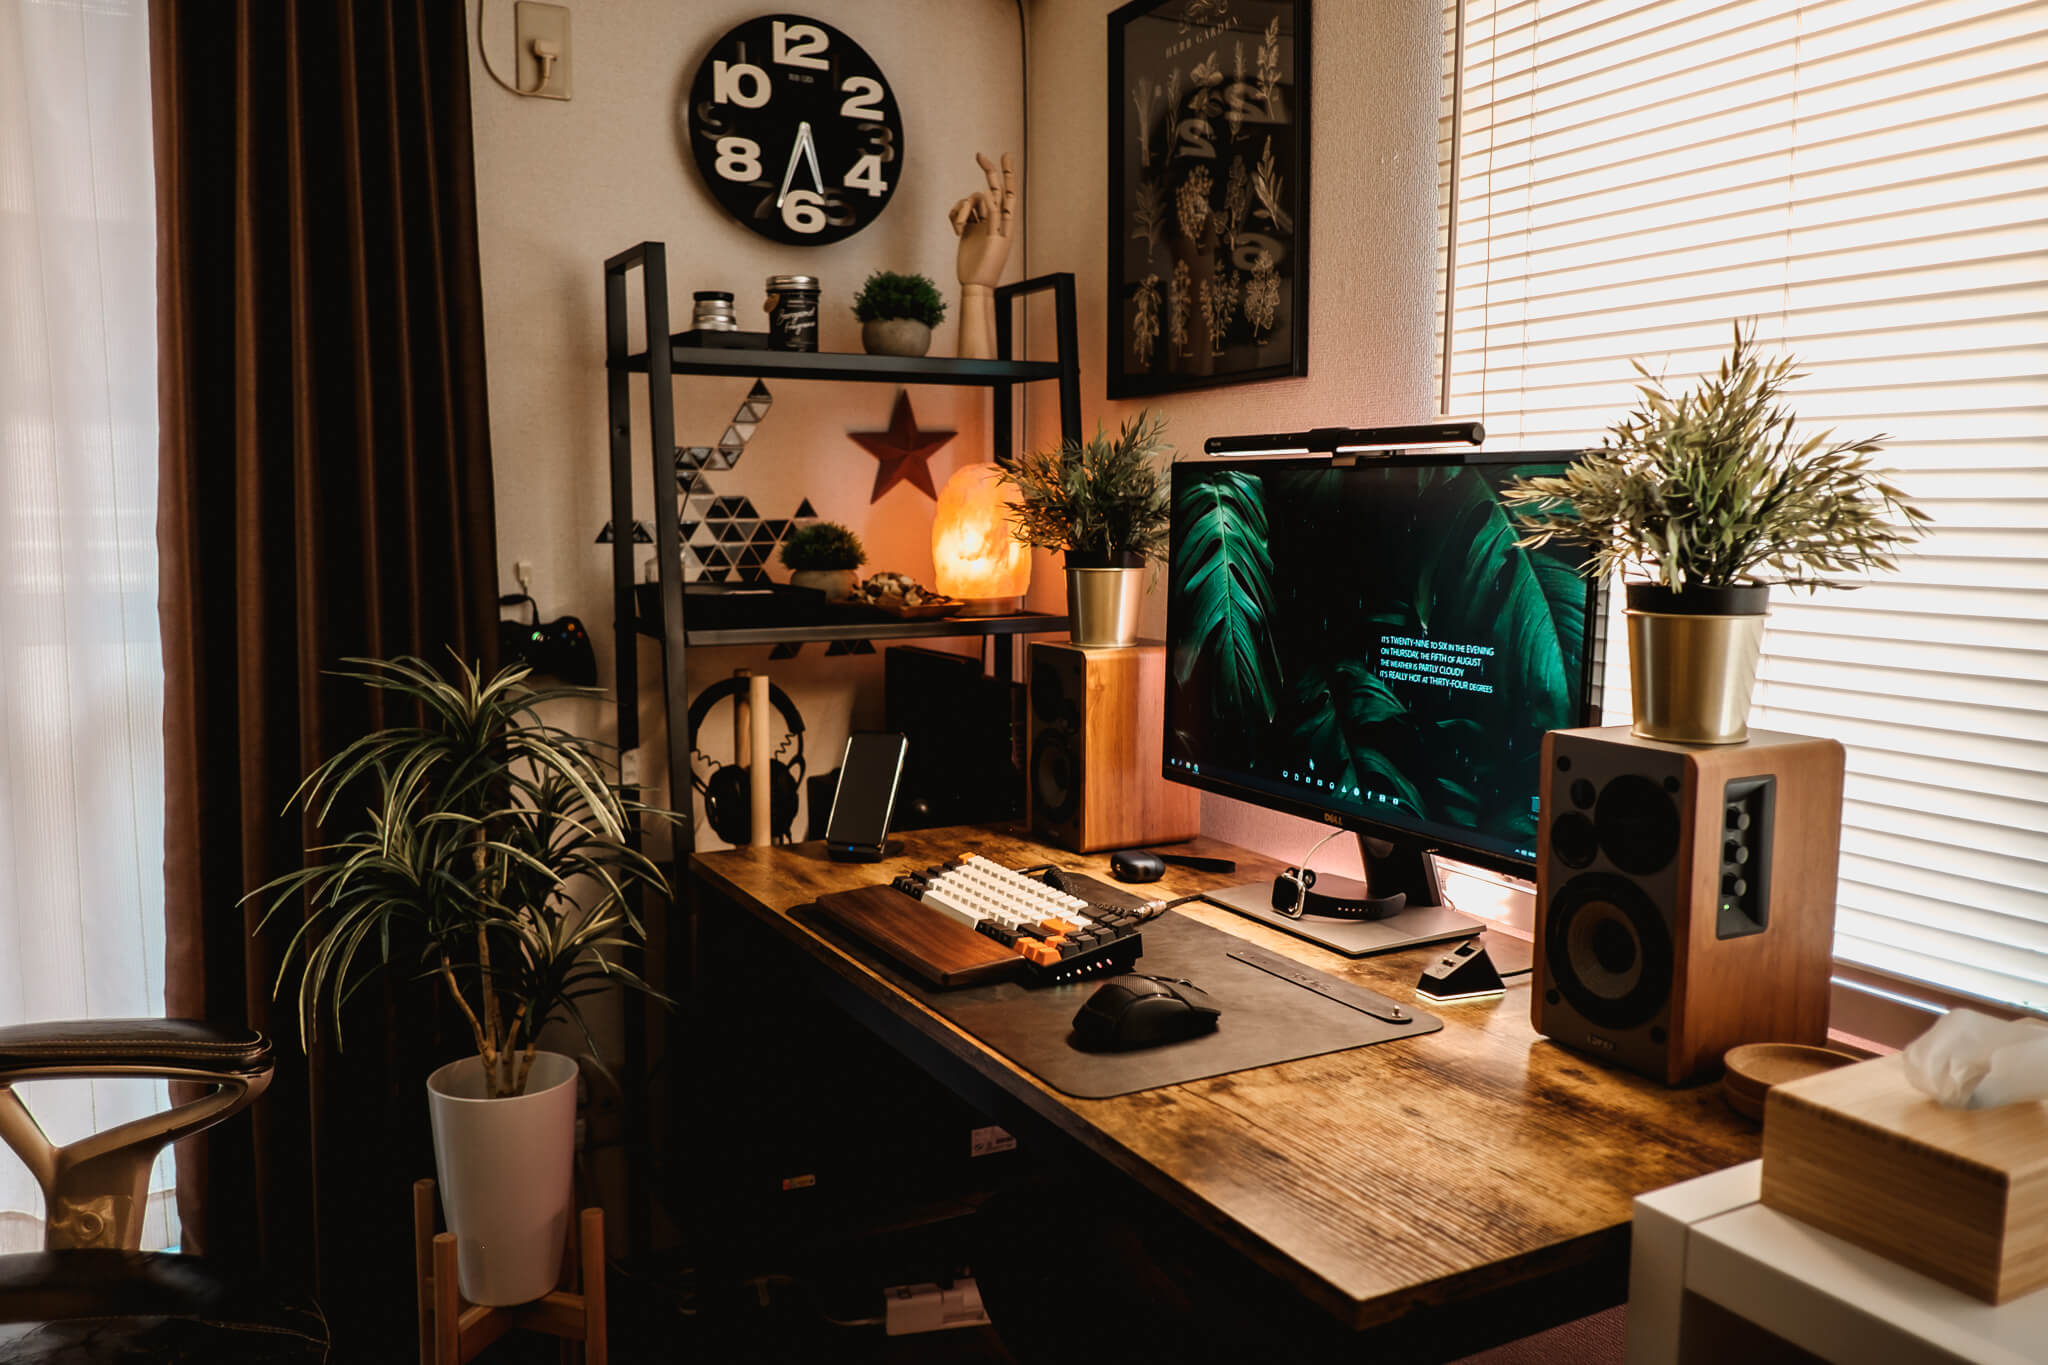 An industrial aesthetic with metallic accents combined with hints of nature is one of the ways to describe Roland's setup